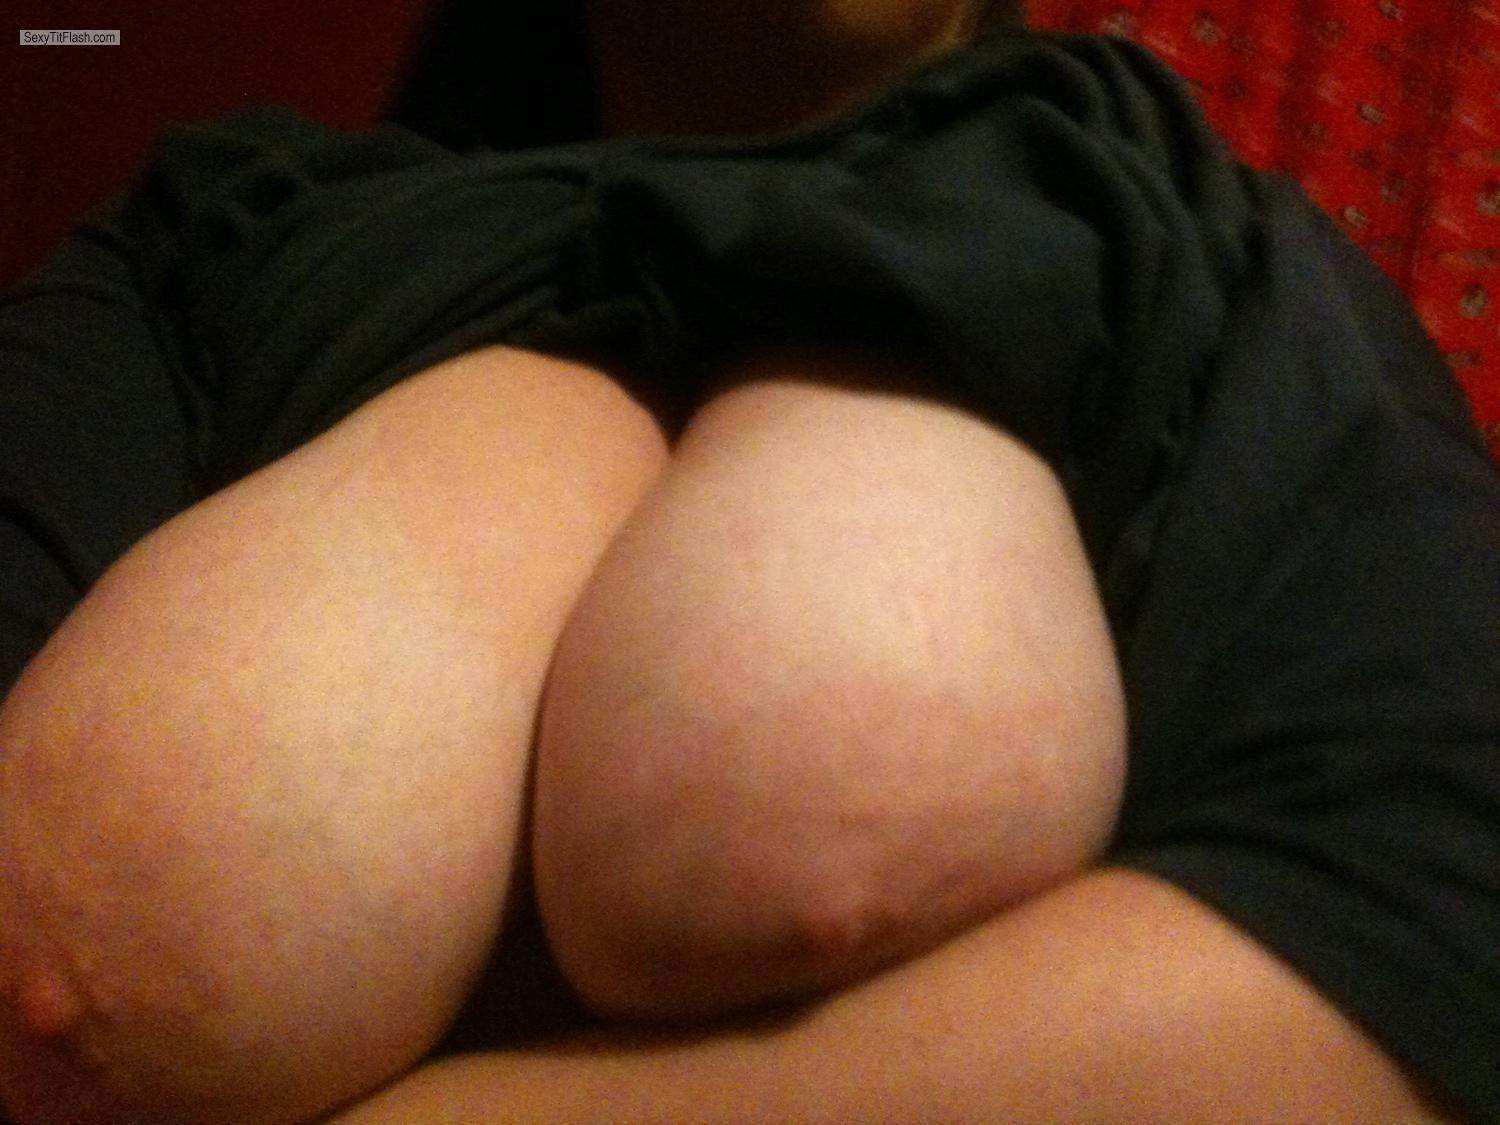 Tit Flash: My Big Tits By IPhone (Selfie) - B from United States